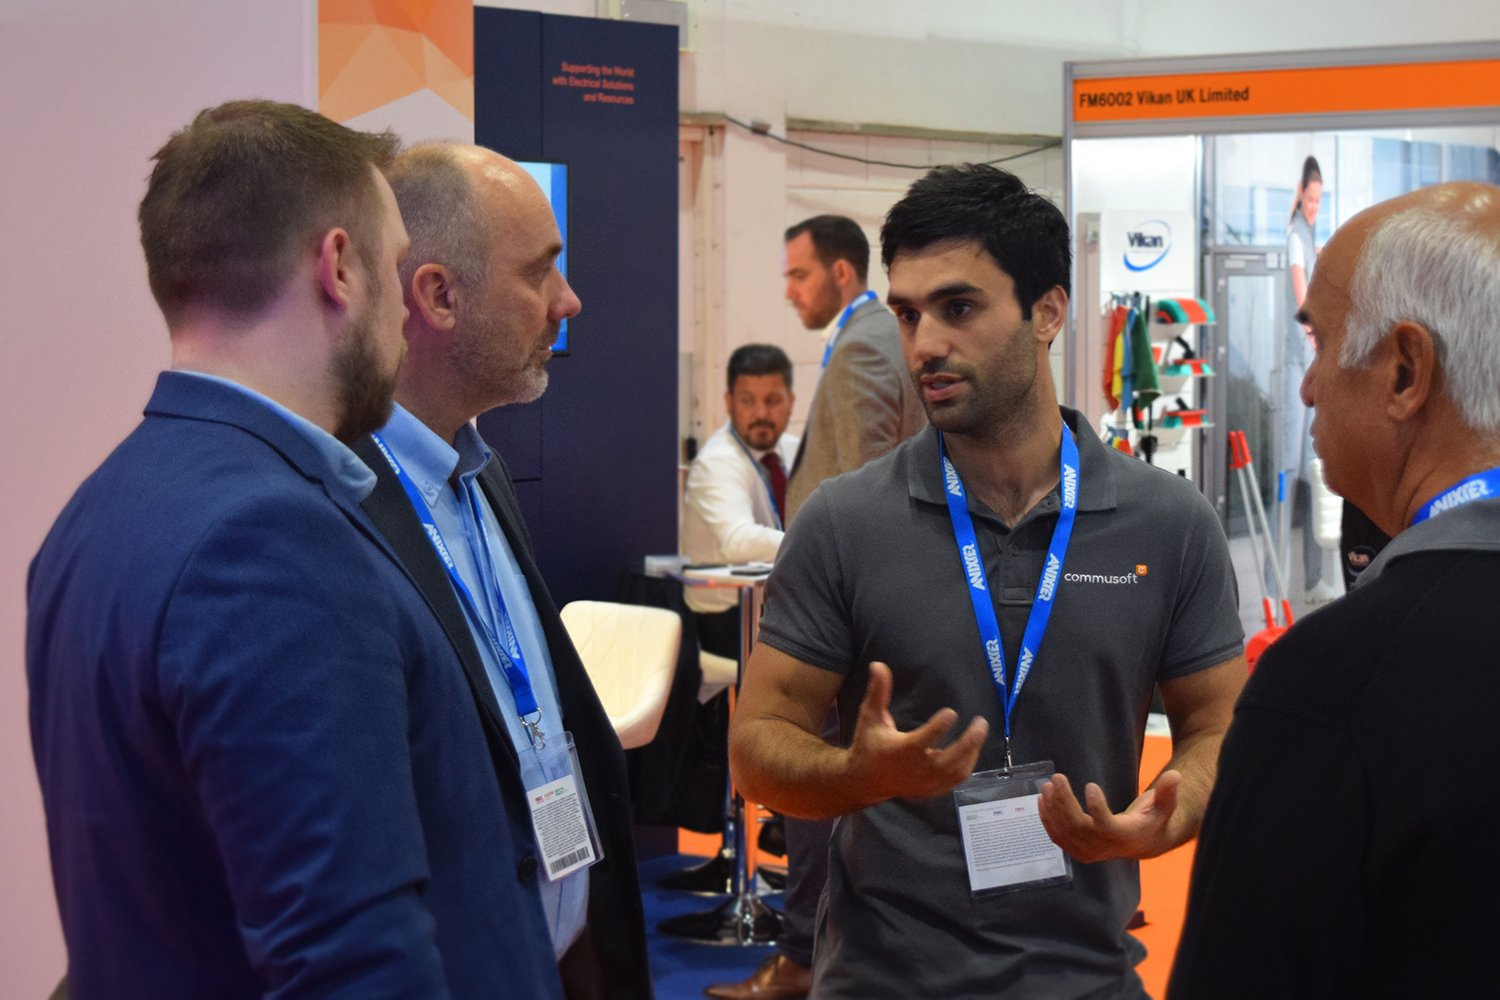 commusoft ceo, jason, talking with 3 men at the facilities show